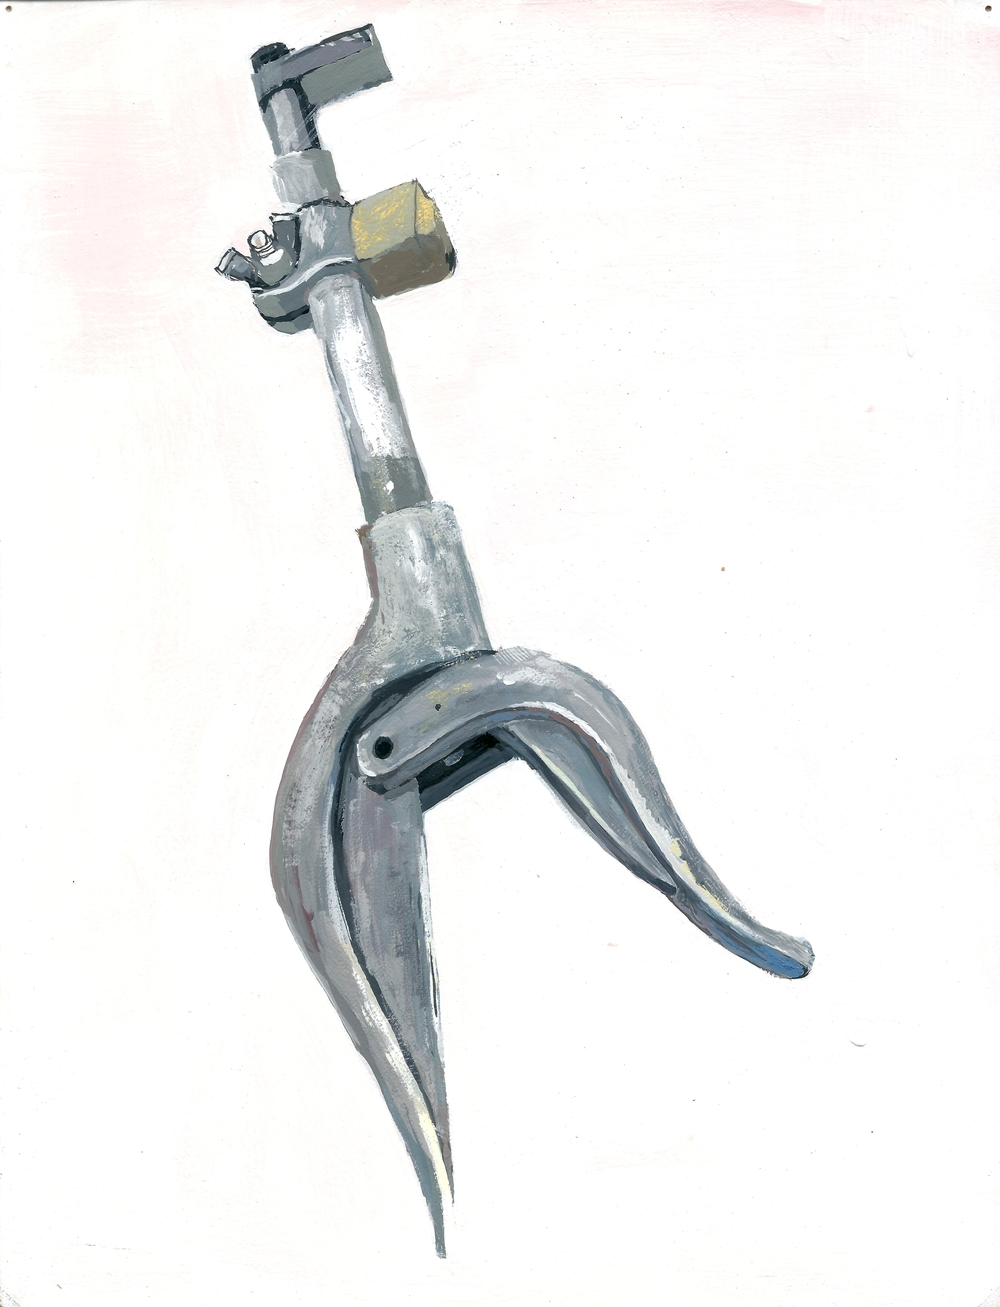 fit-up tool